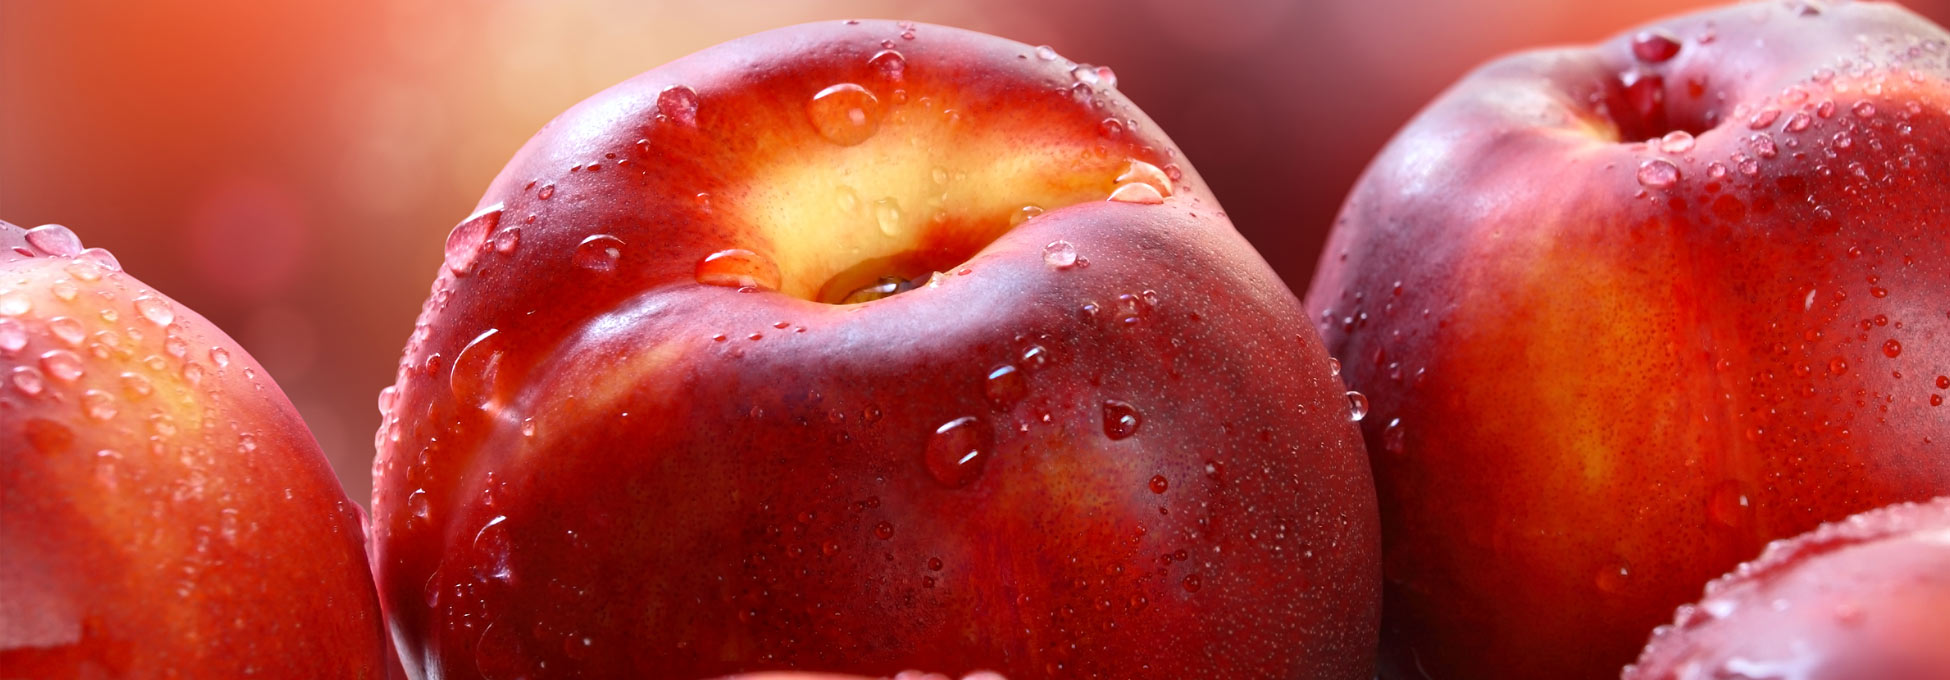 trigs-homepg-banner-nectarines.jpg